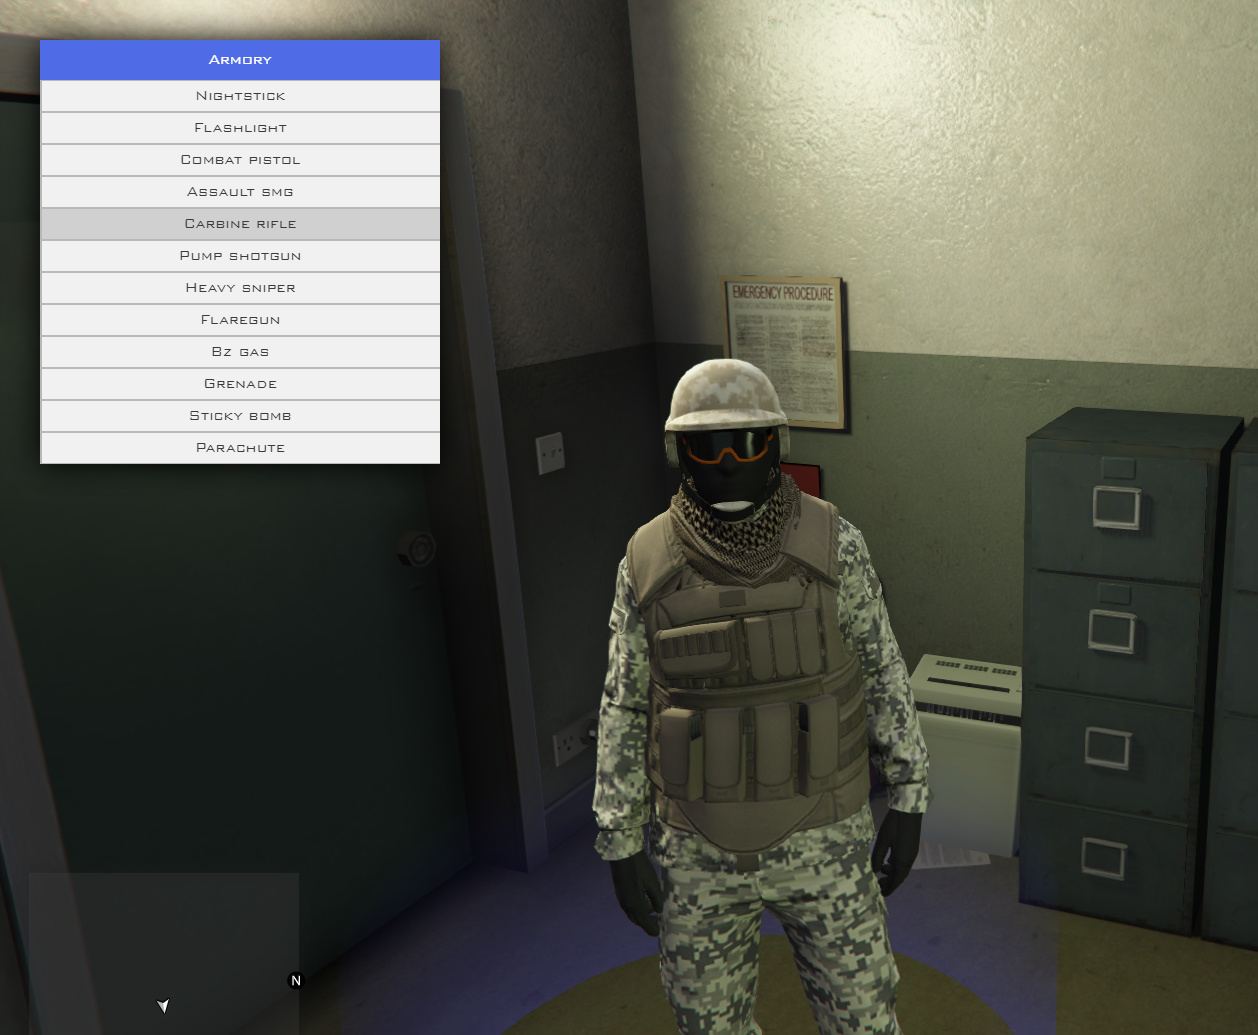 Outdated] [Powered by ESX] [Gamemode] Military Roleplay